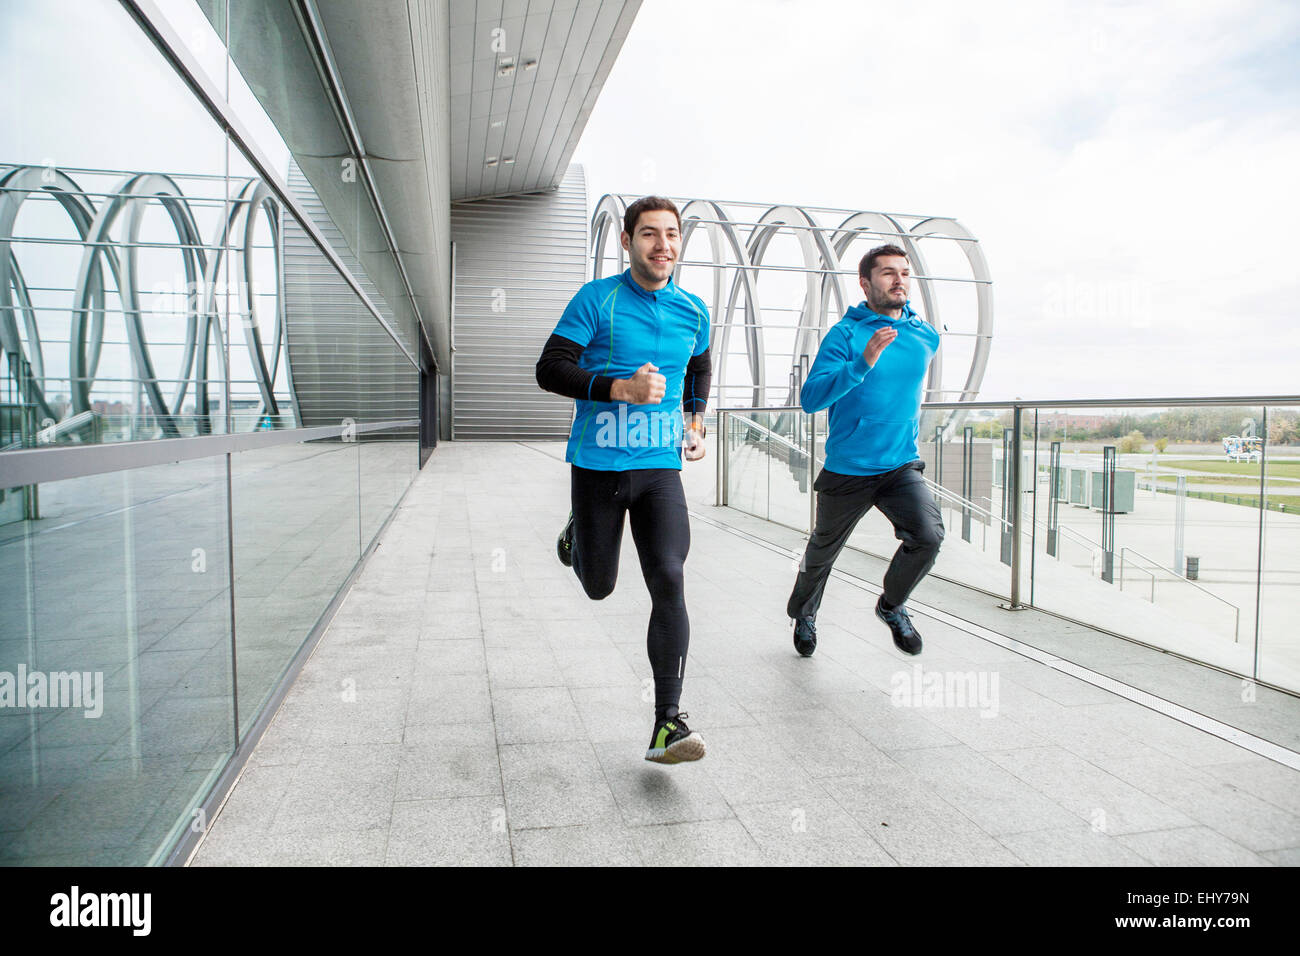 Male runners doing sprint training in city - Stock Image